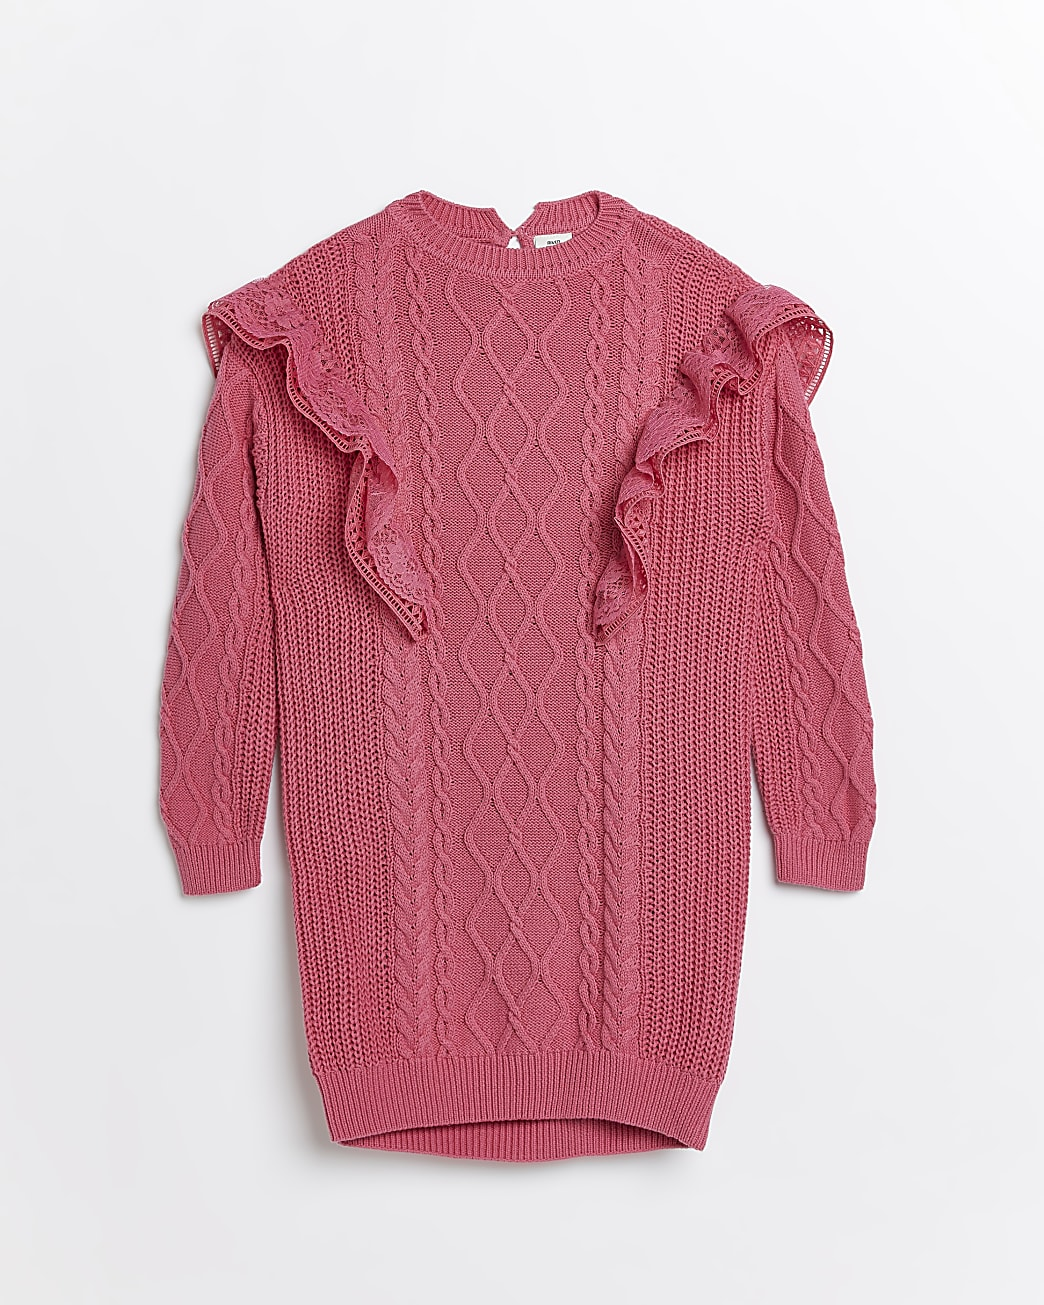 Girls pink lace frill cable knit jumper dress